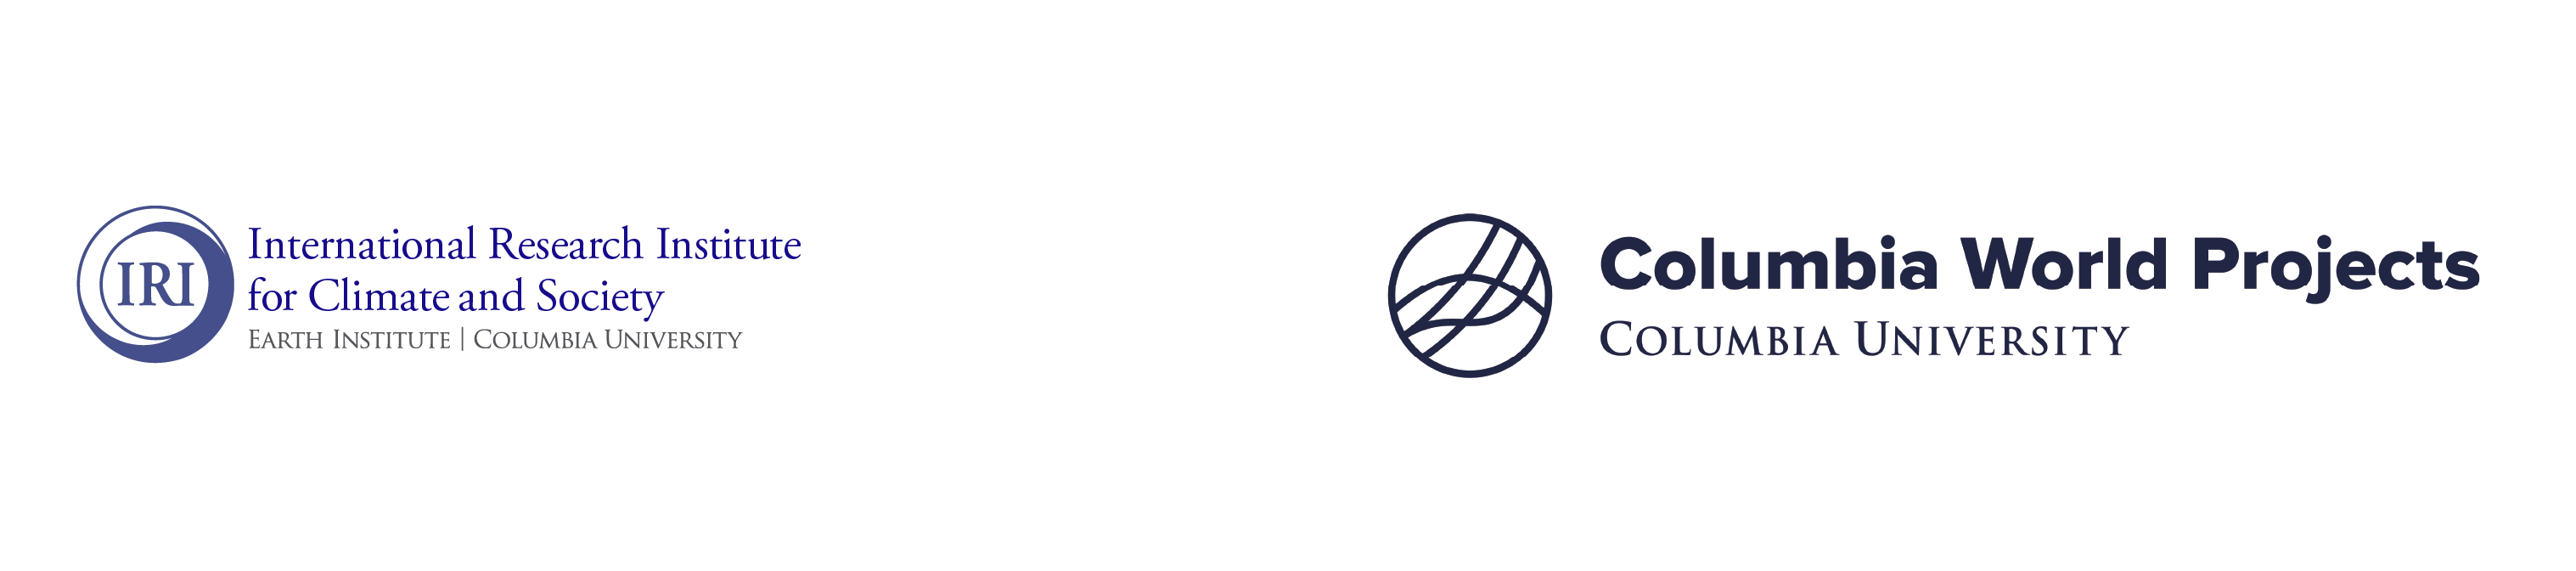 """The logo for the International Research Institute for Climate and Society, Earth Institute, Columbia Univeristy is on the left. The logo has """"IRI"""" inside blue and white intersecting circles with the name of the institution in blue text to the right of the circles. The logo on the right is the logo for Columbia World Projects. It is in black and has a circle on the left side with a circle with wavy lines crossing it. The text to the right of the circle reads """"Columbia World Projects, Columbia University."""""""